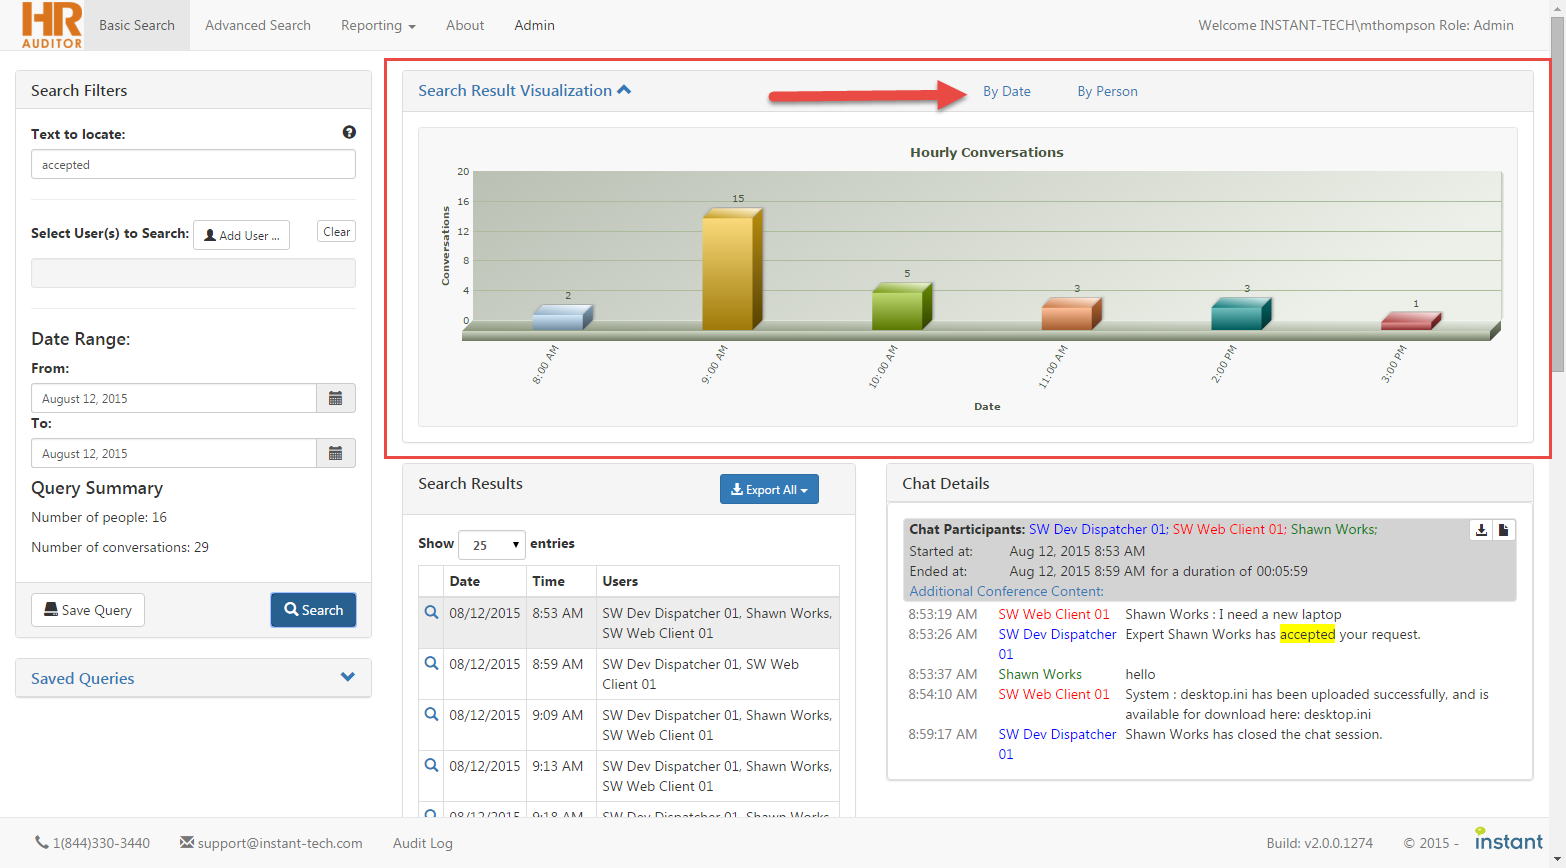 By default, the Search Result Visualization is initially displayed by date